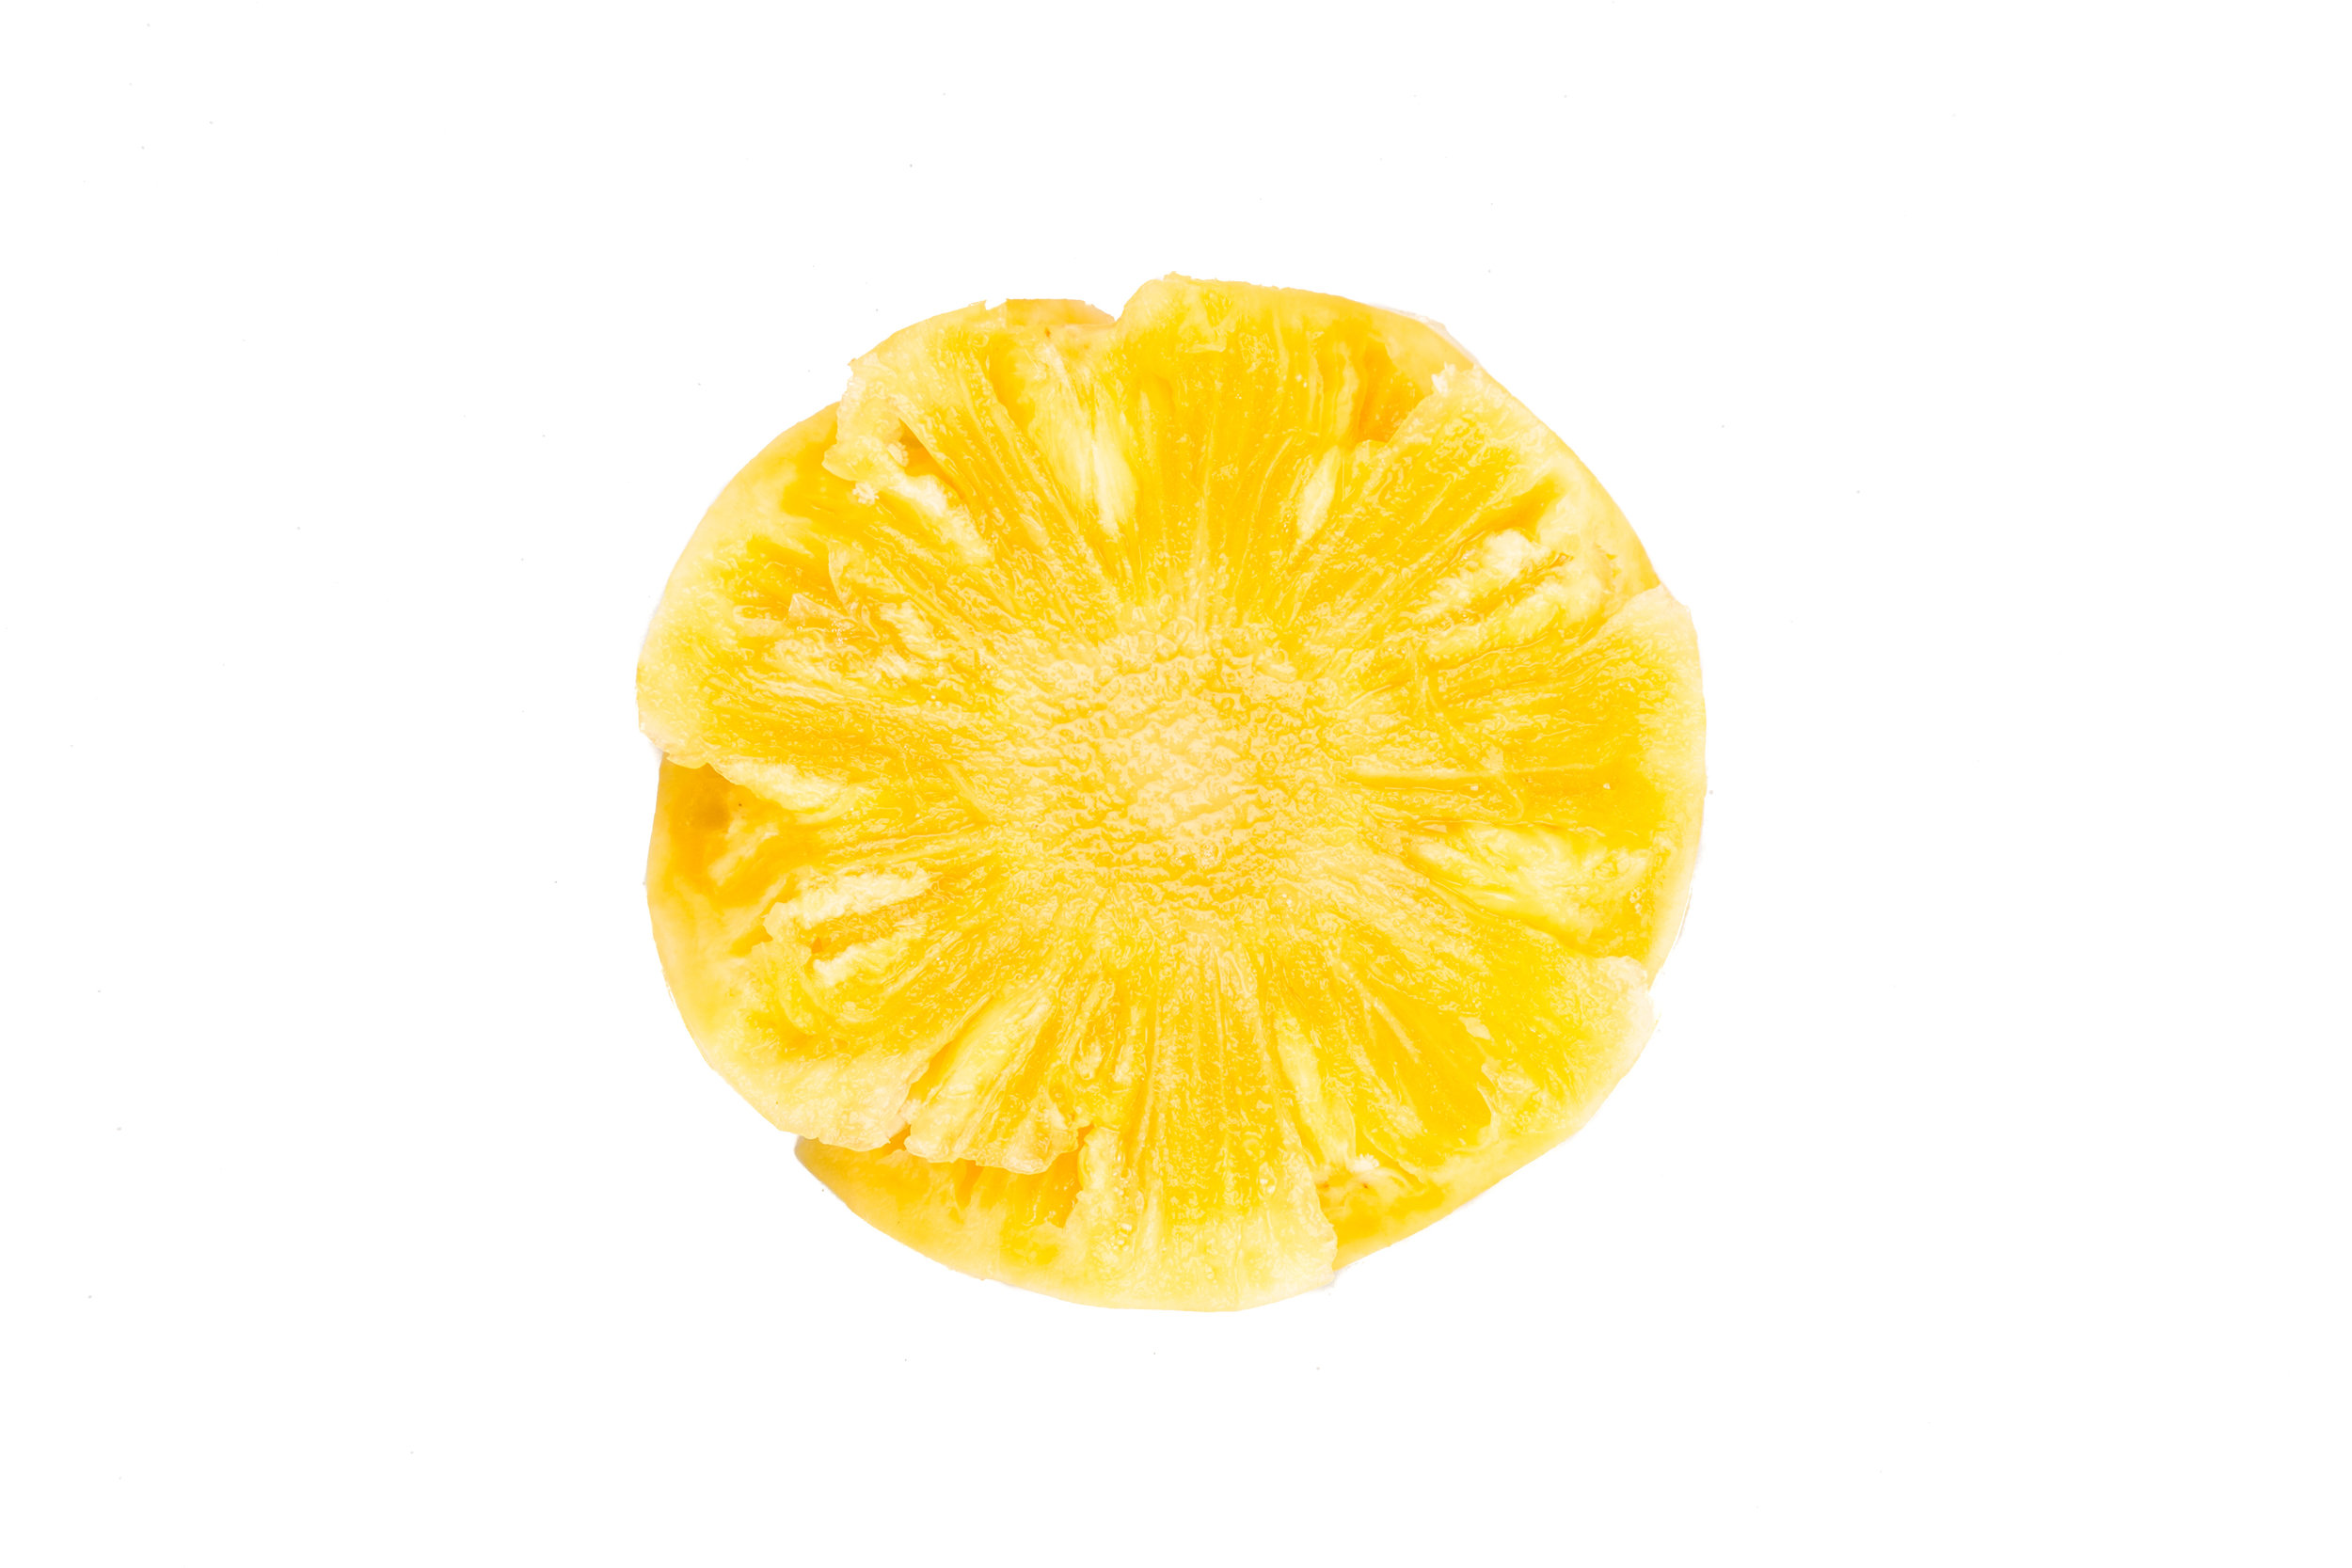 - Bromelain is an enzyme present in pineapple. It has various health benefits, including relieving sinus problems, reducing inflammation, and improving digestion.